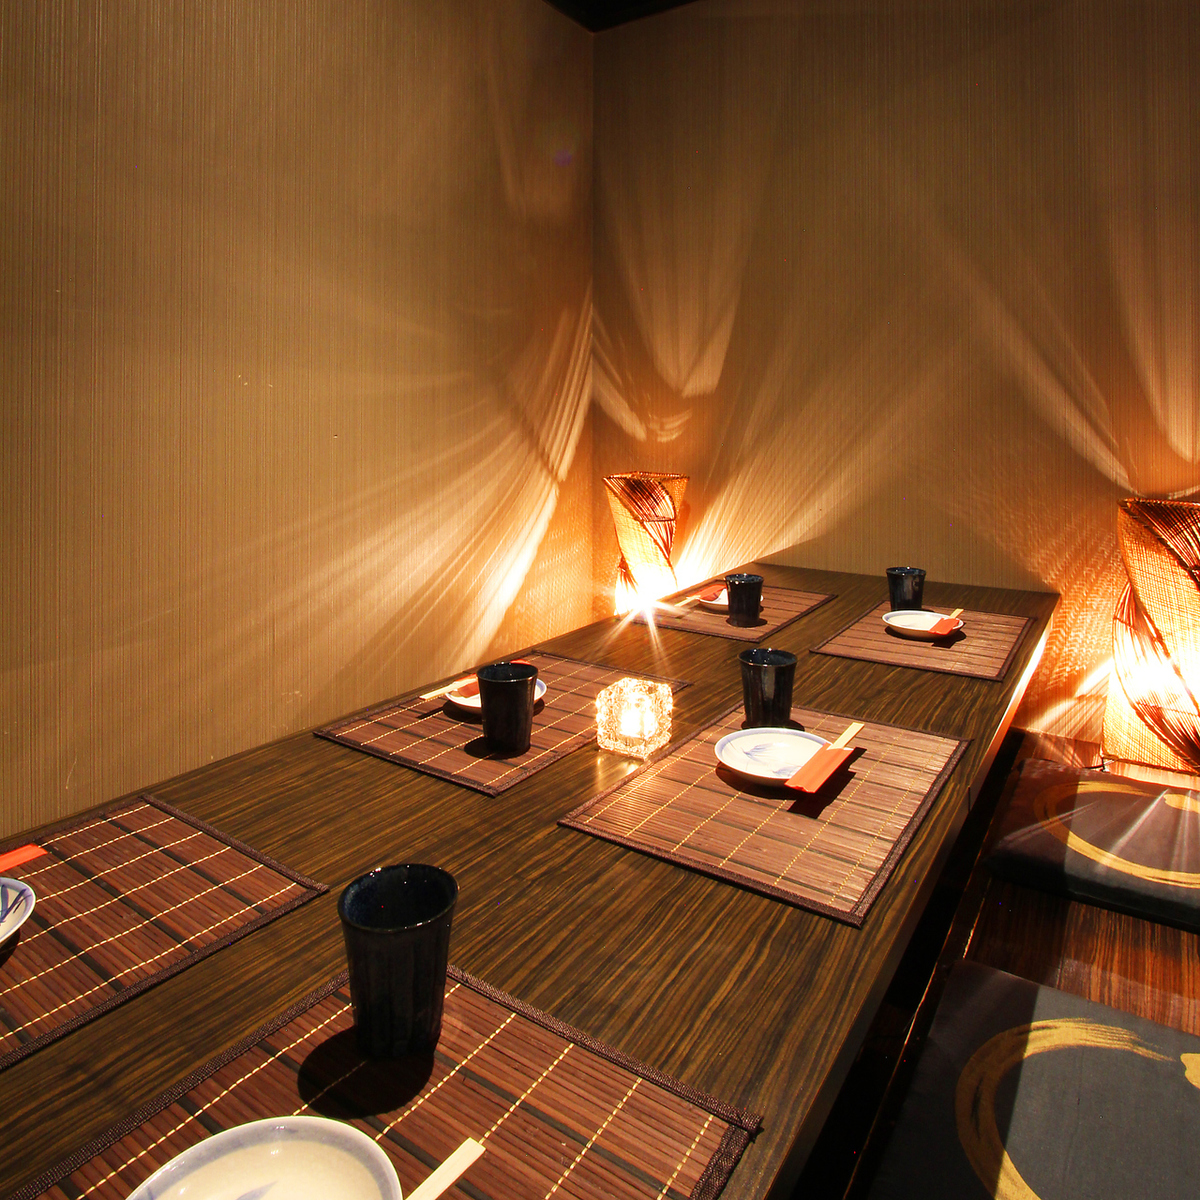 The commitment private room is fully equipped with 200 seats in all